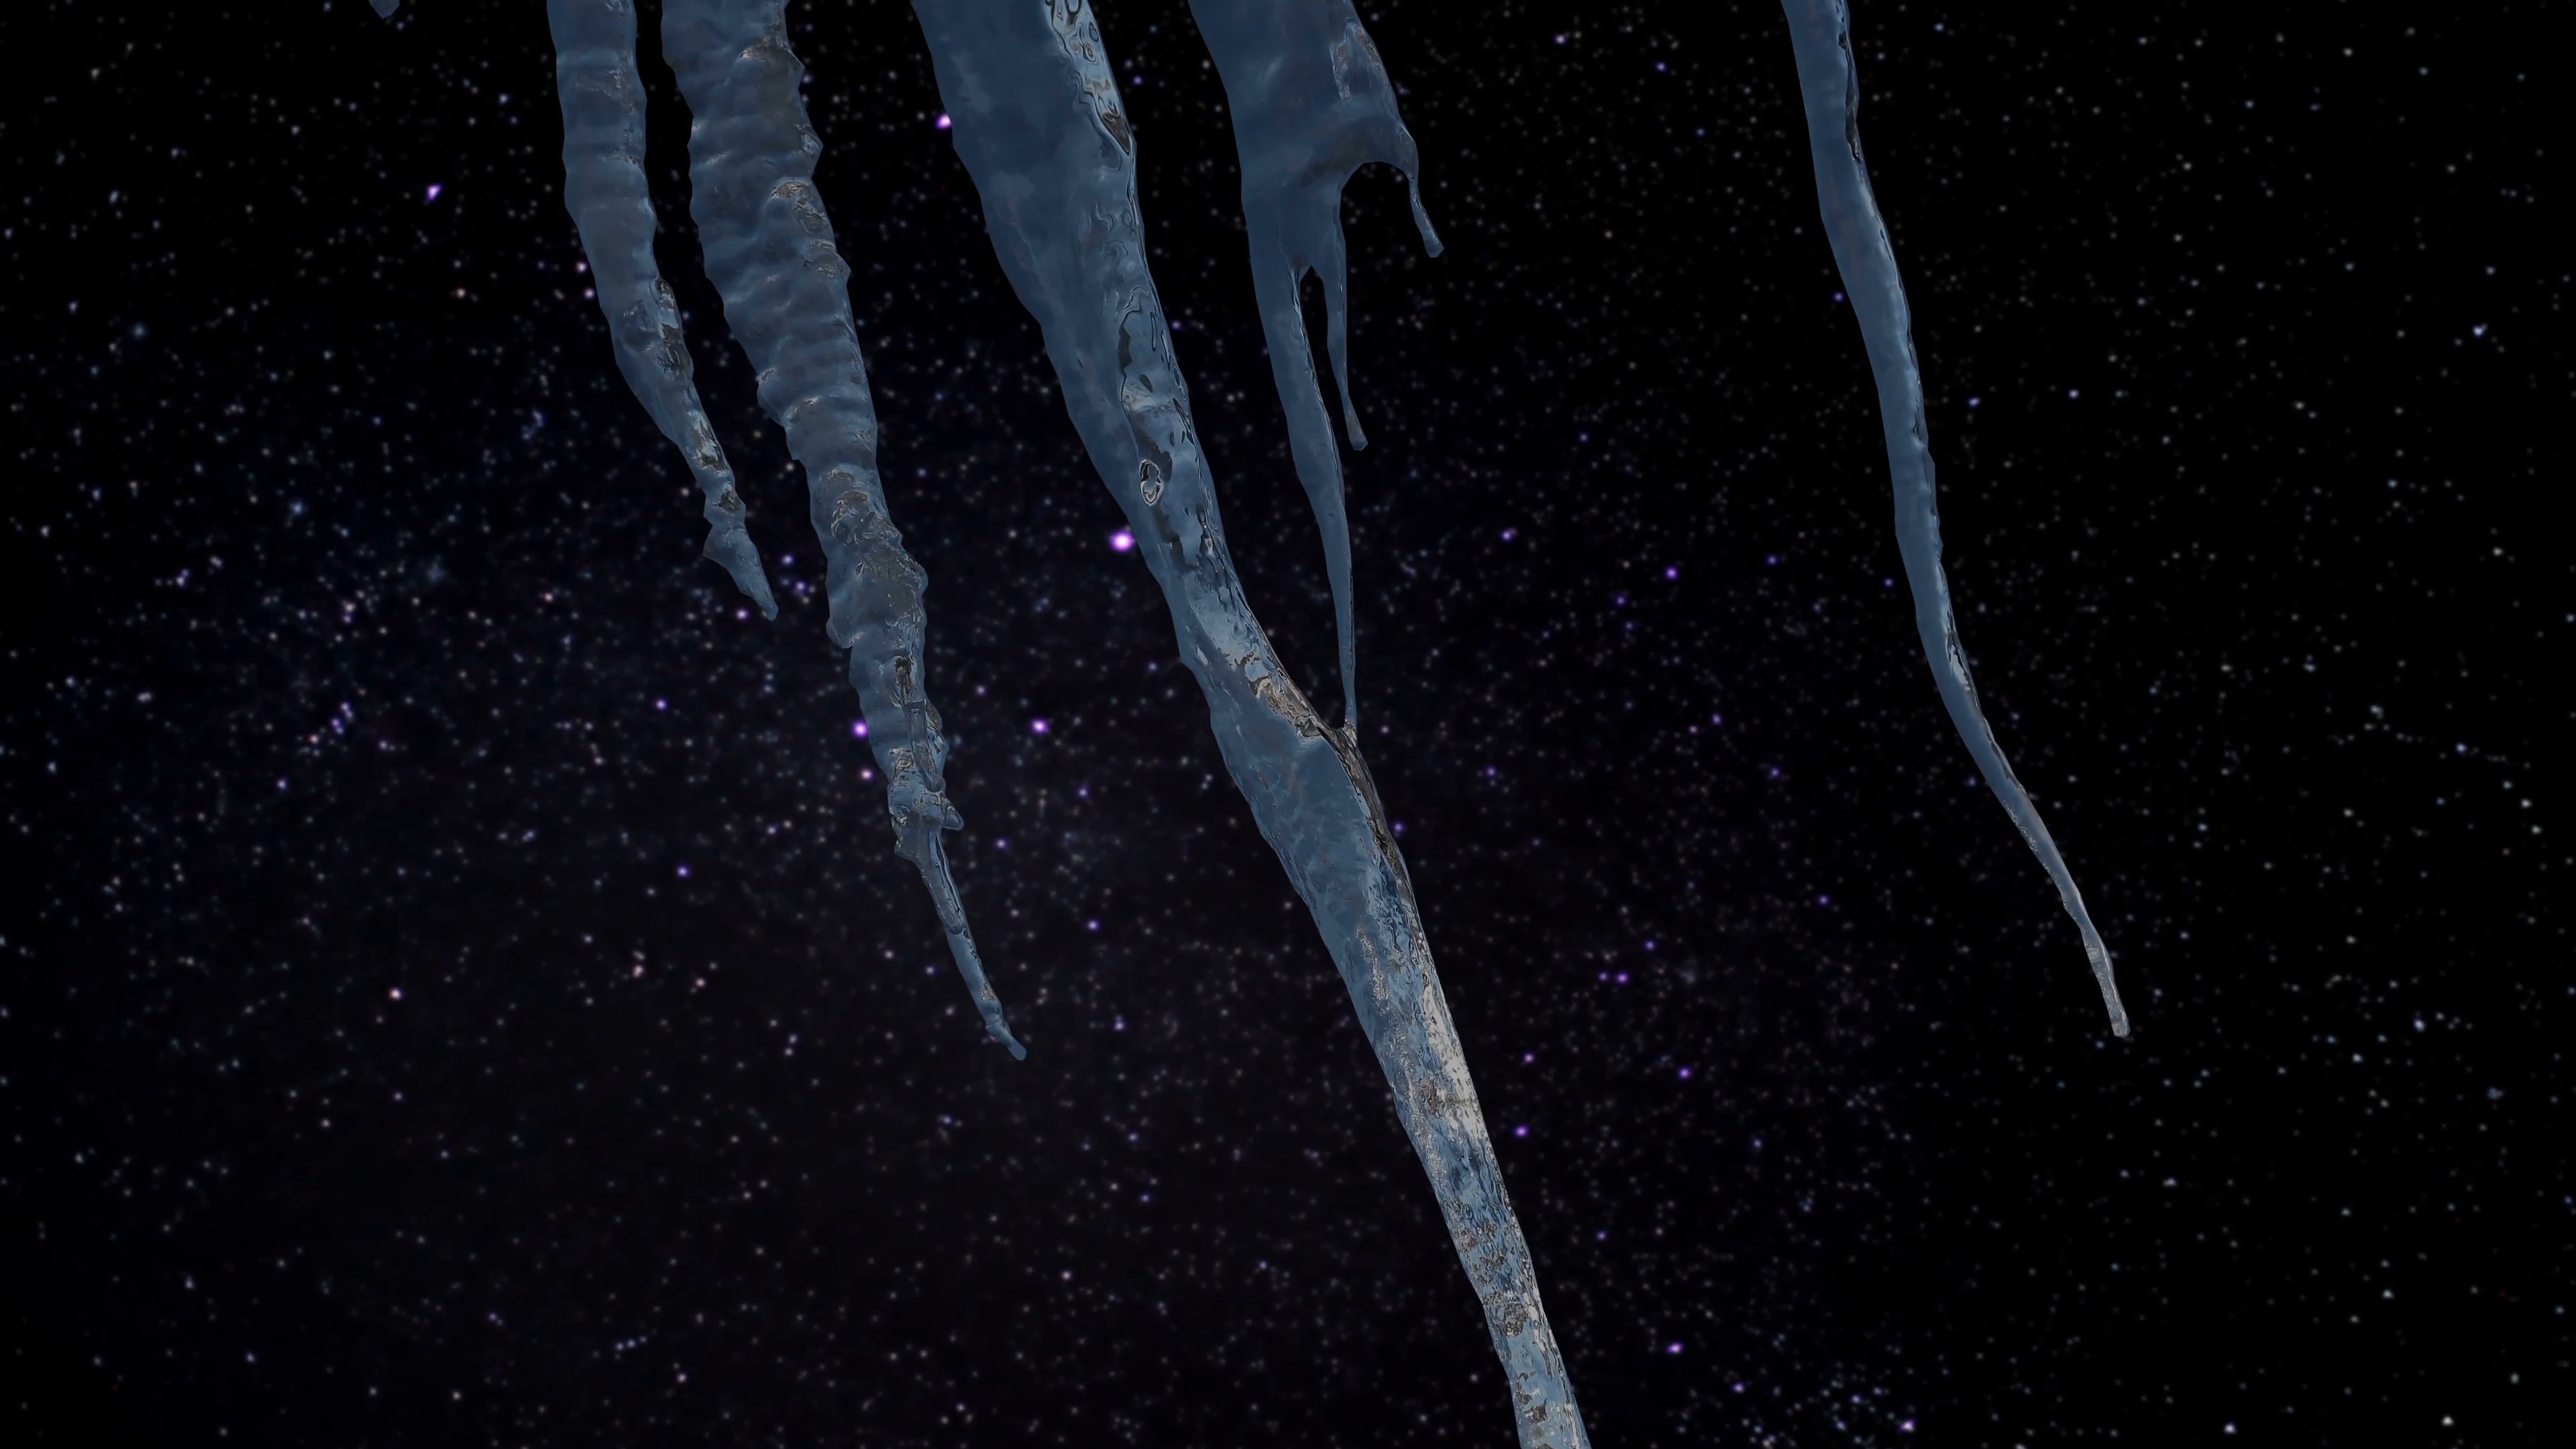 3840x2160 Timelapse - Icicles with a blurry starry night in the background Motion  Background - VideoBlocks